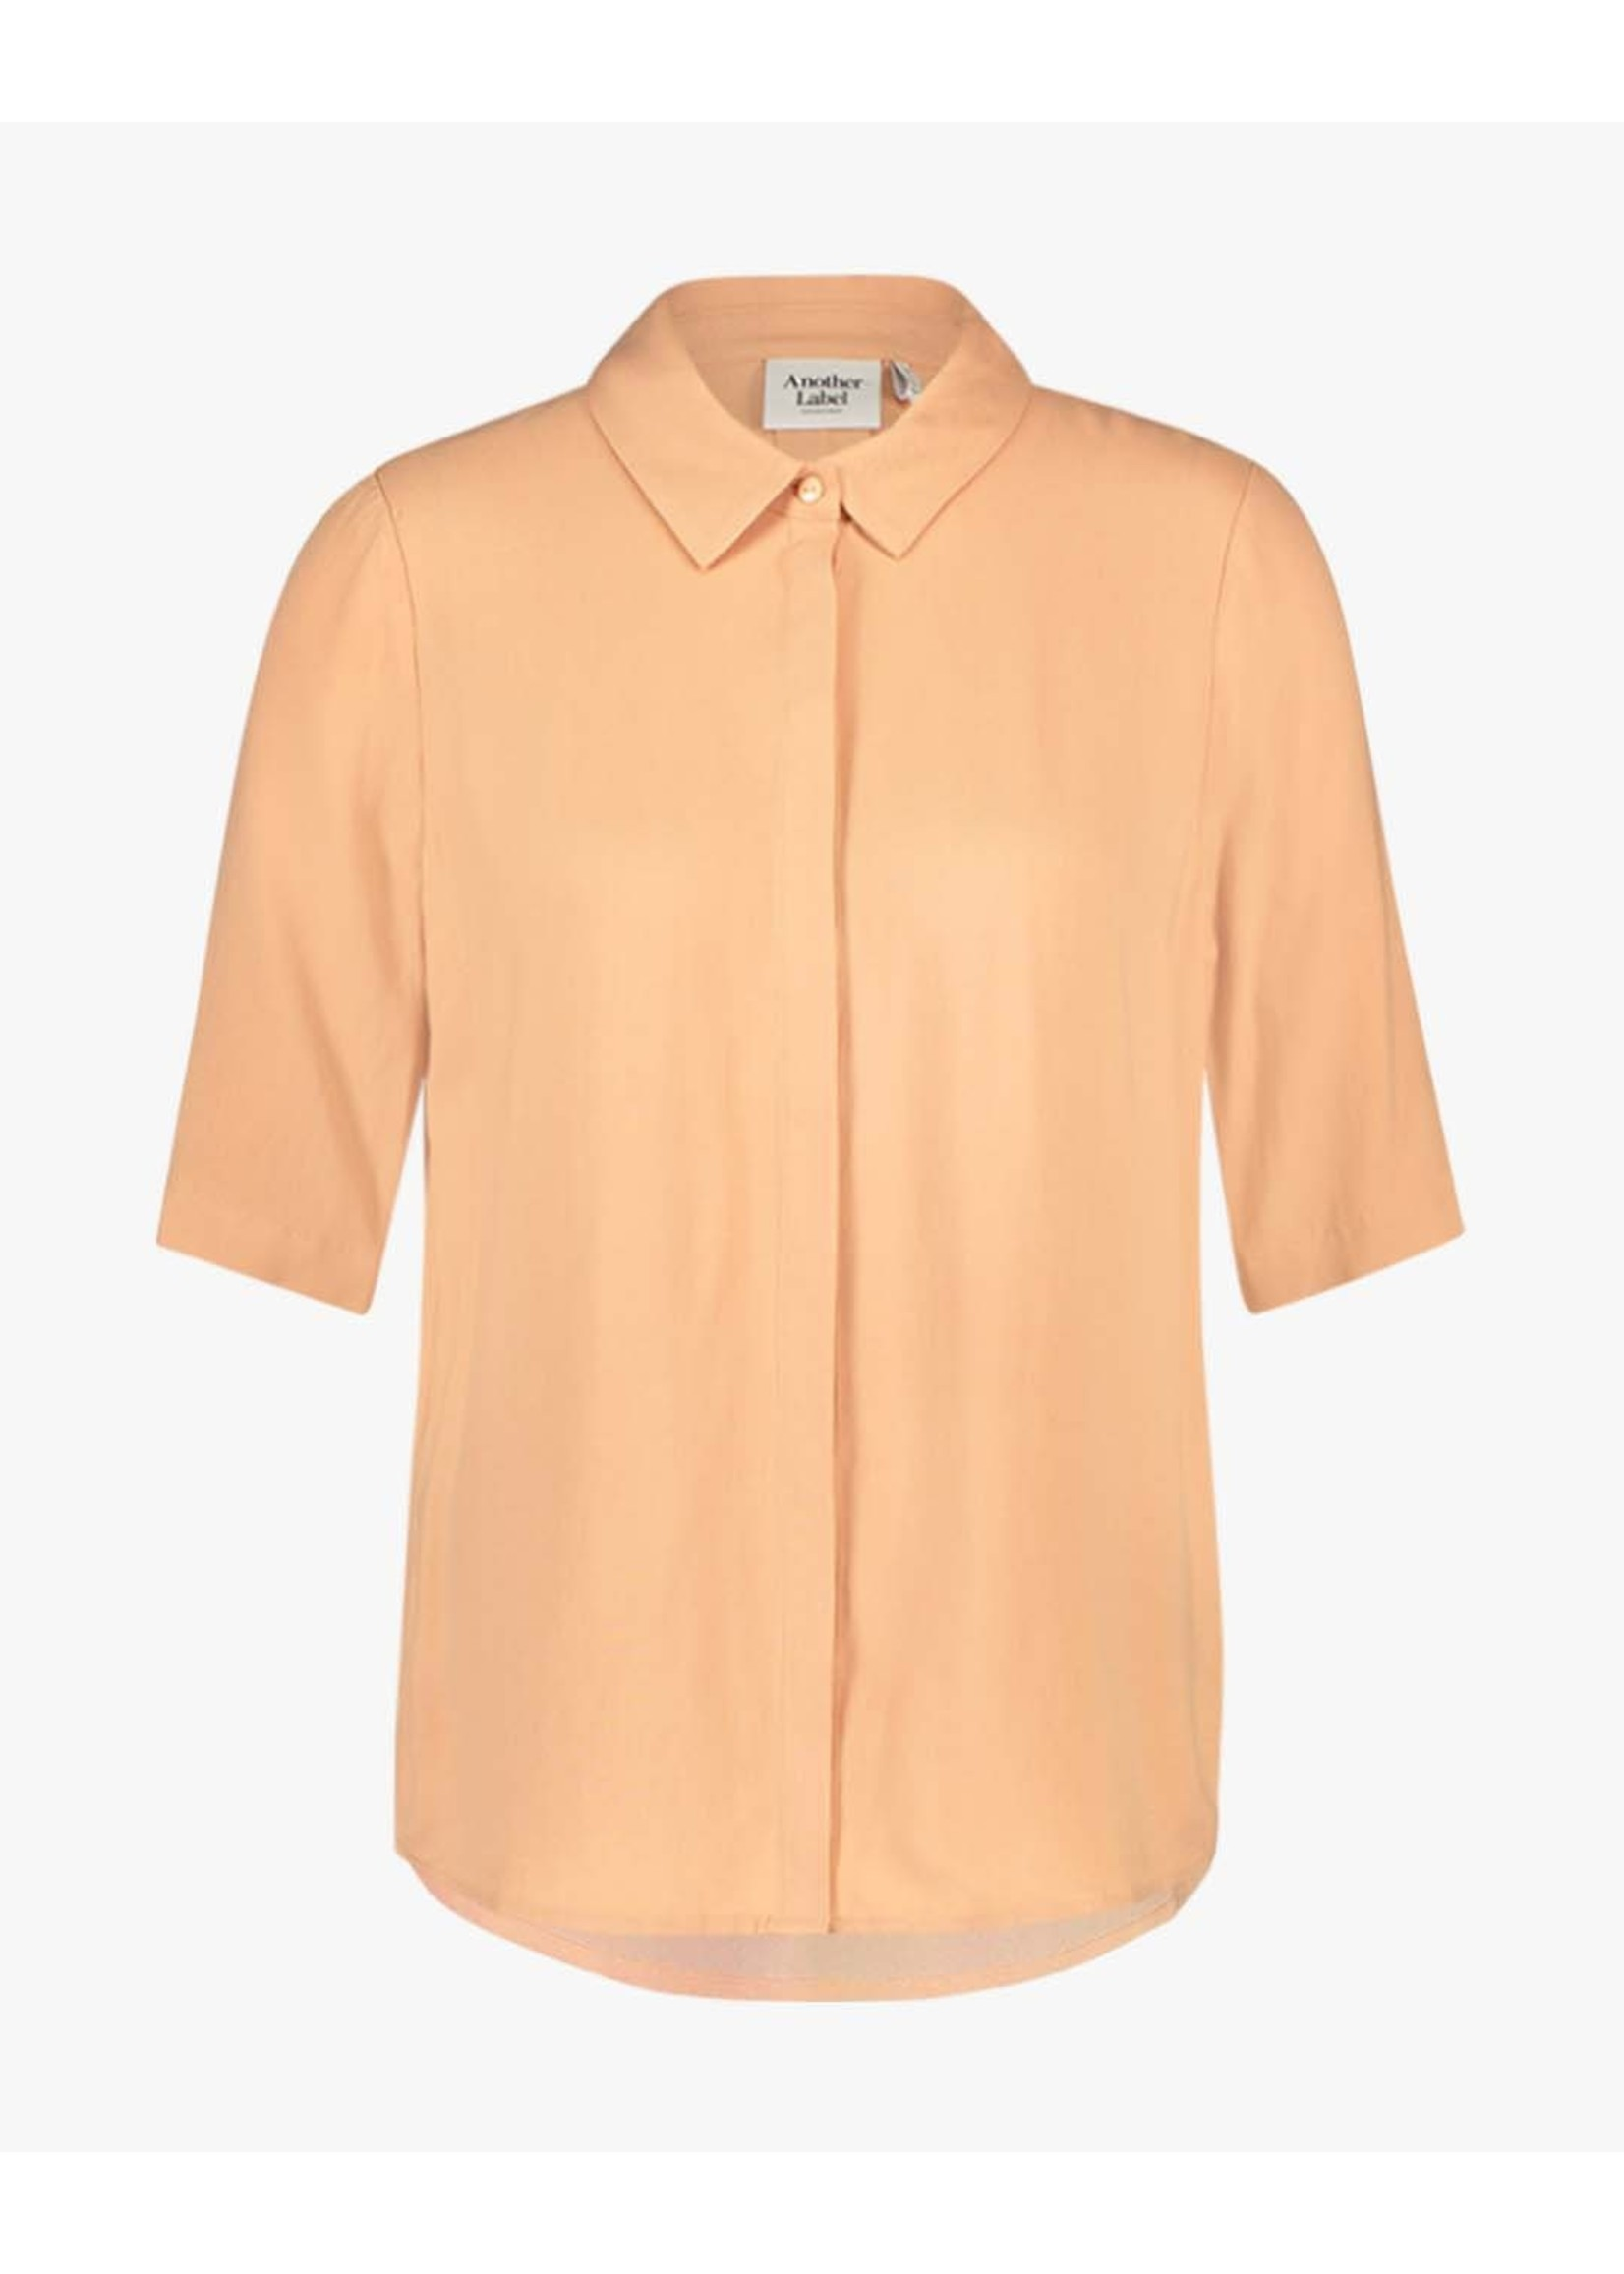 Another Label BACHE SHIRT Dusted Peach